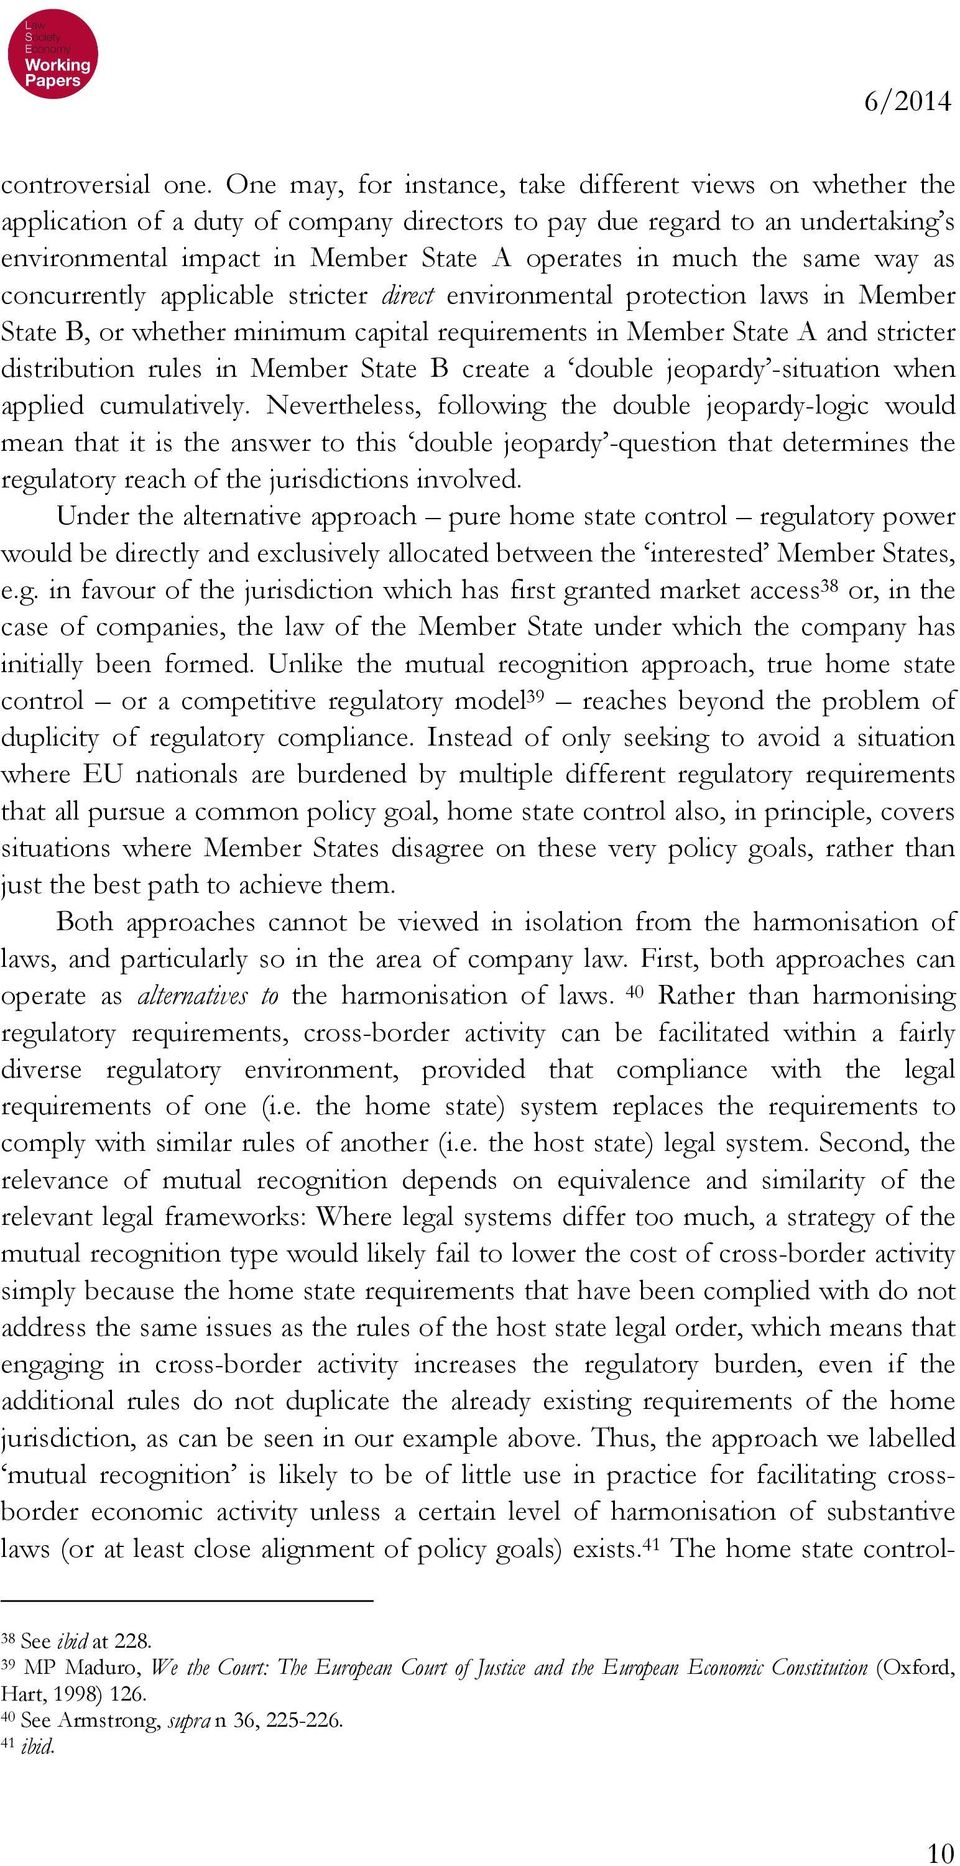 same way as concurrently applicable stricter direct environmental protection laws in Member State B, or whether minimum capital requirements in Member State A and stricter distribution rules in